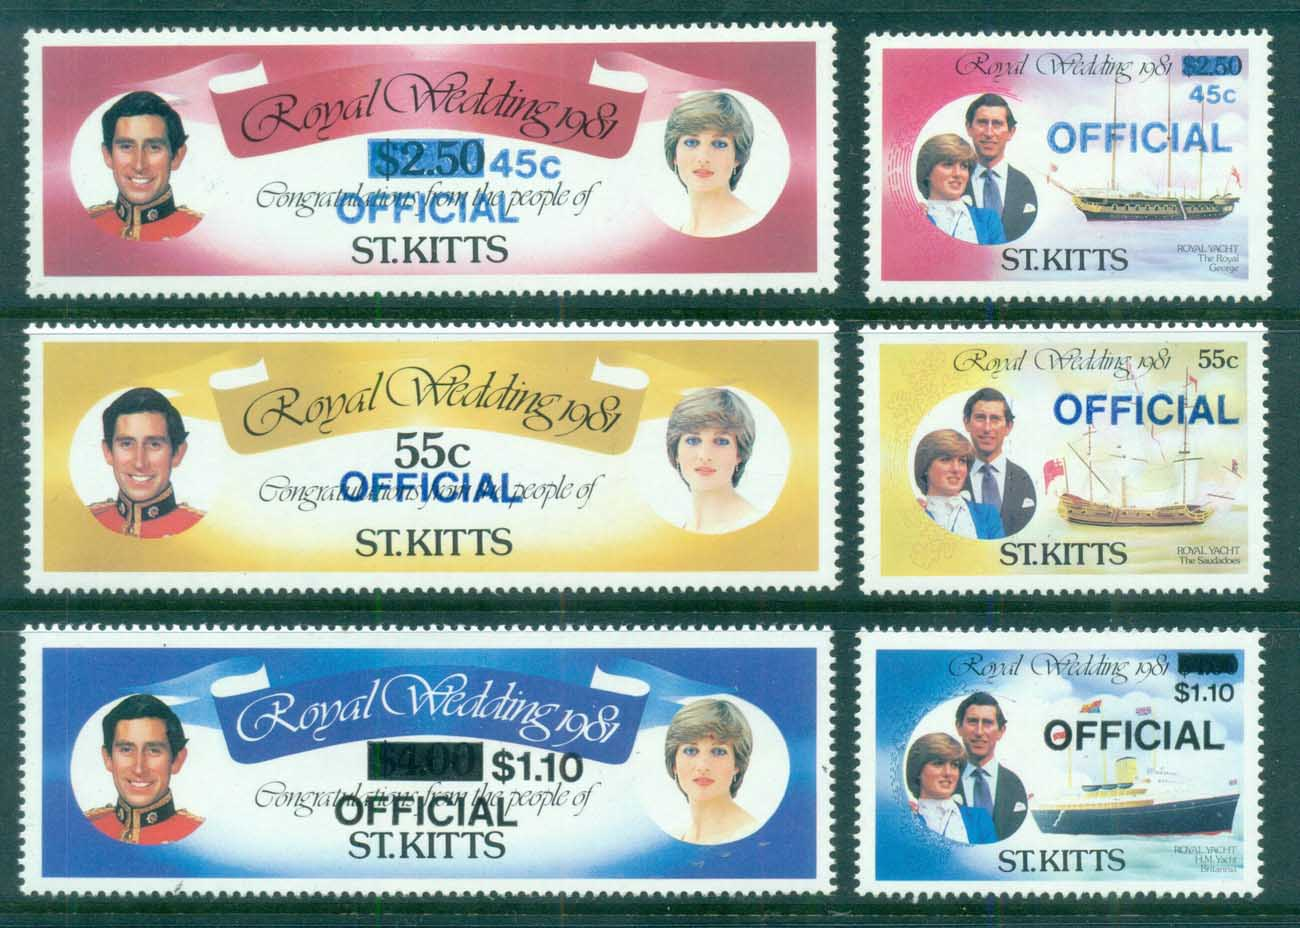 St Kitts 1981 Royal Wedding, Charles & Diana OFFICIAL MUH